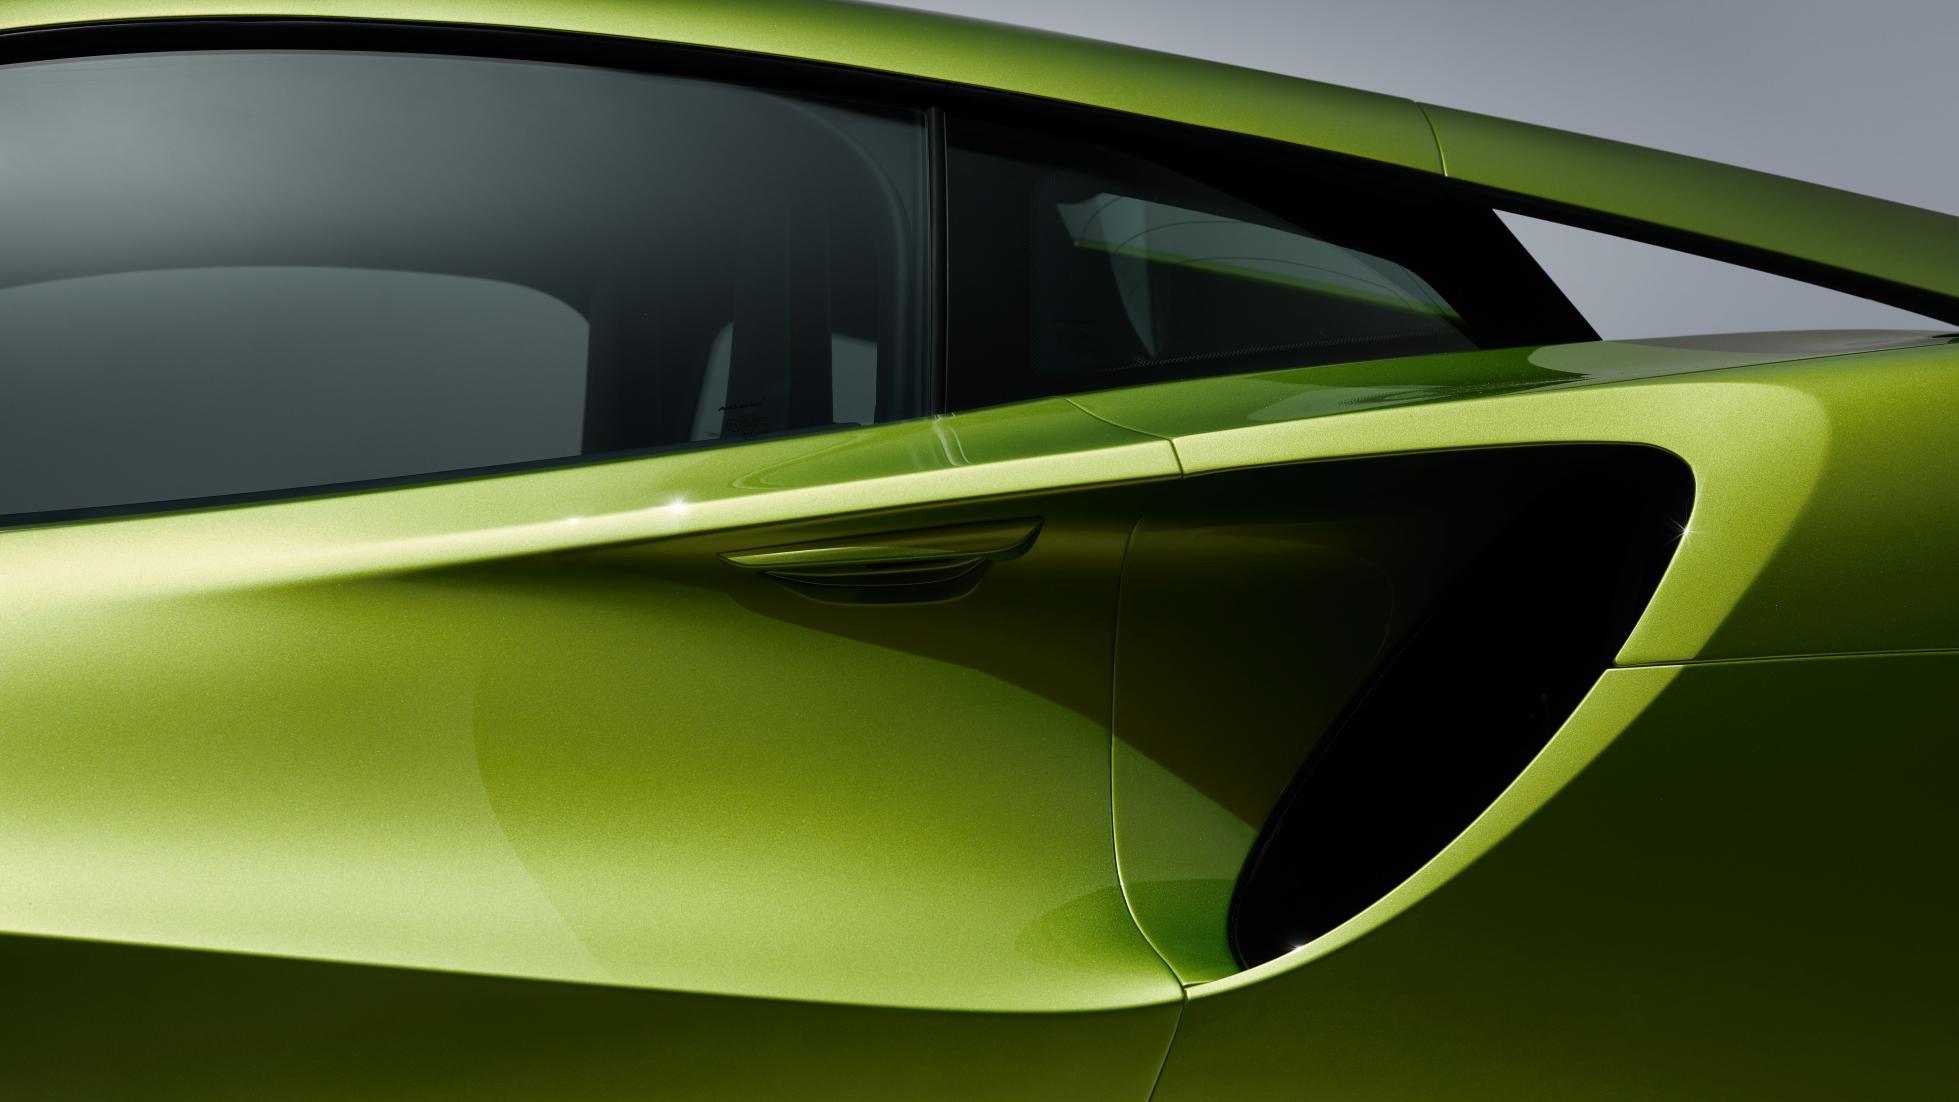 McLaren Artura in Flux Green rear vent